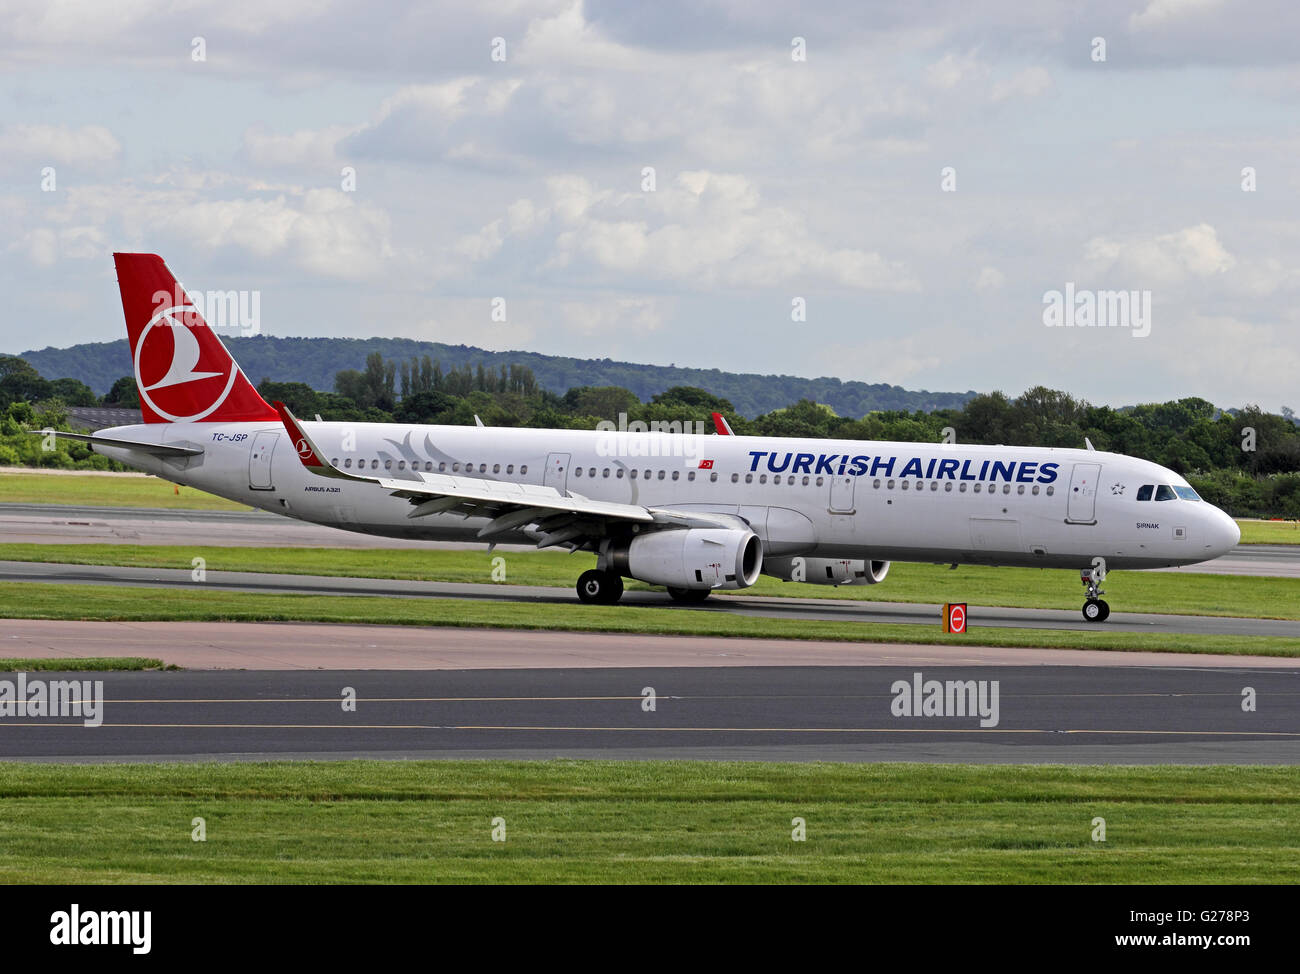 Turkish Airlines Airbus A321 airliner taxiing at Manchester International Airport. - Stock Image